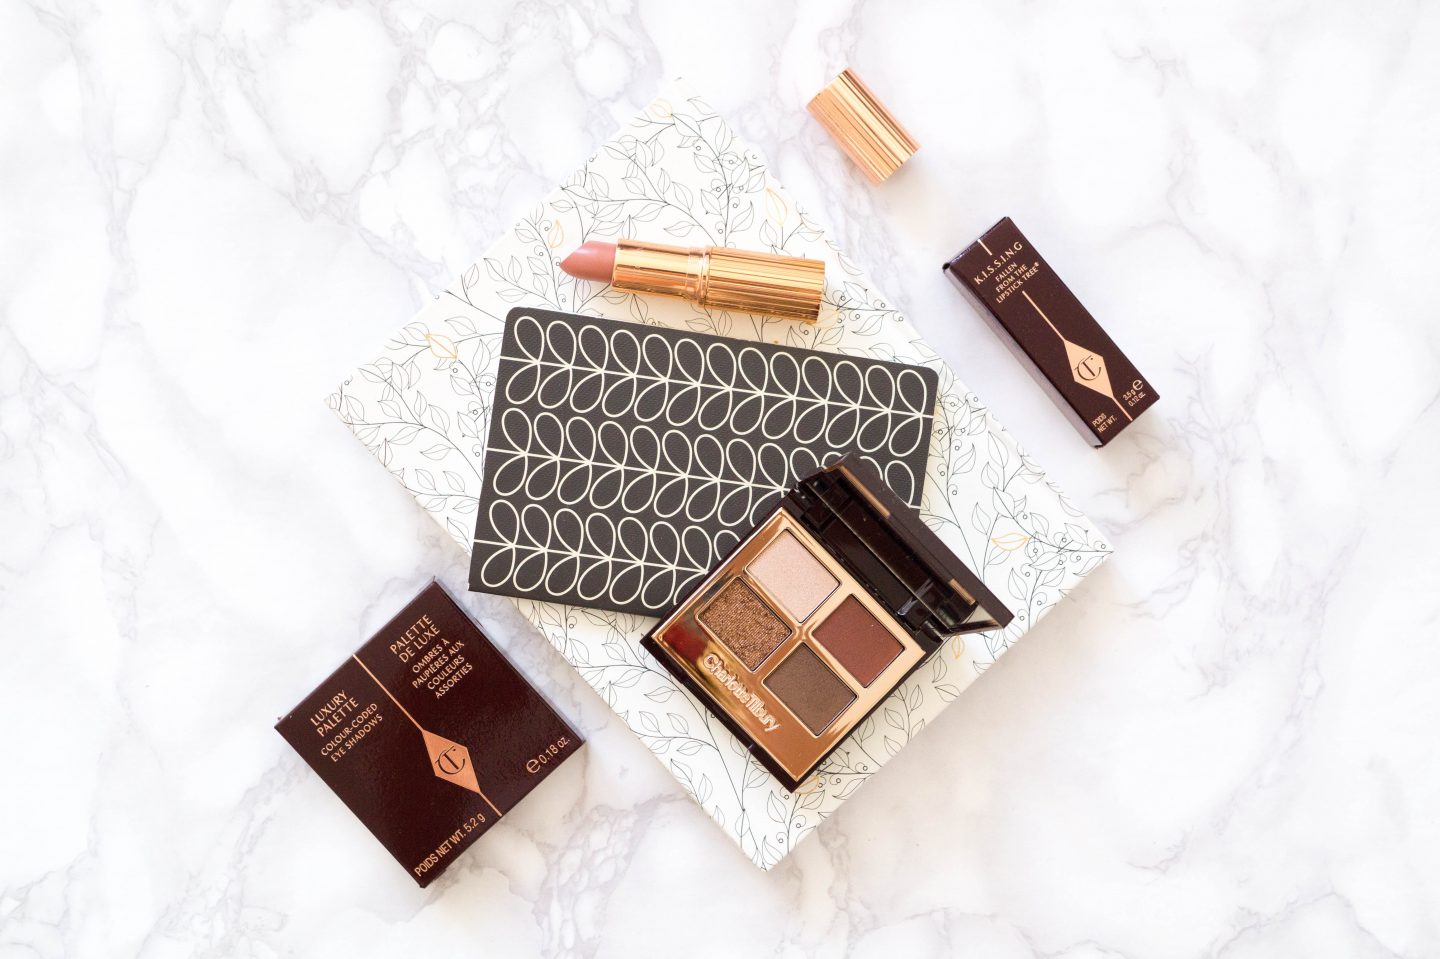 The Two Charlotte Tilbury Products You Need (Plus Swatches)